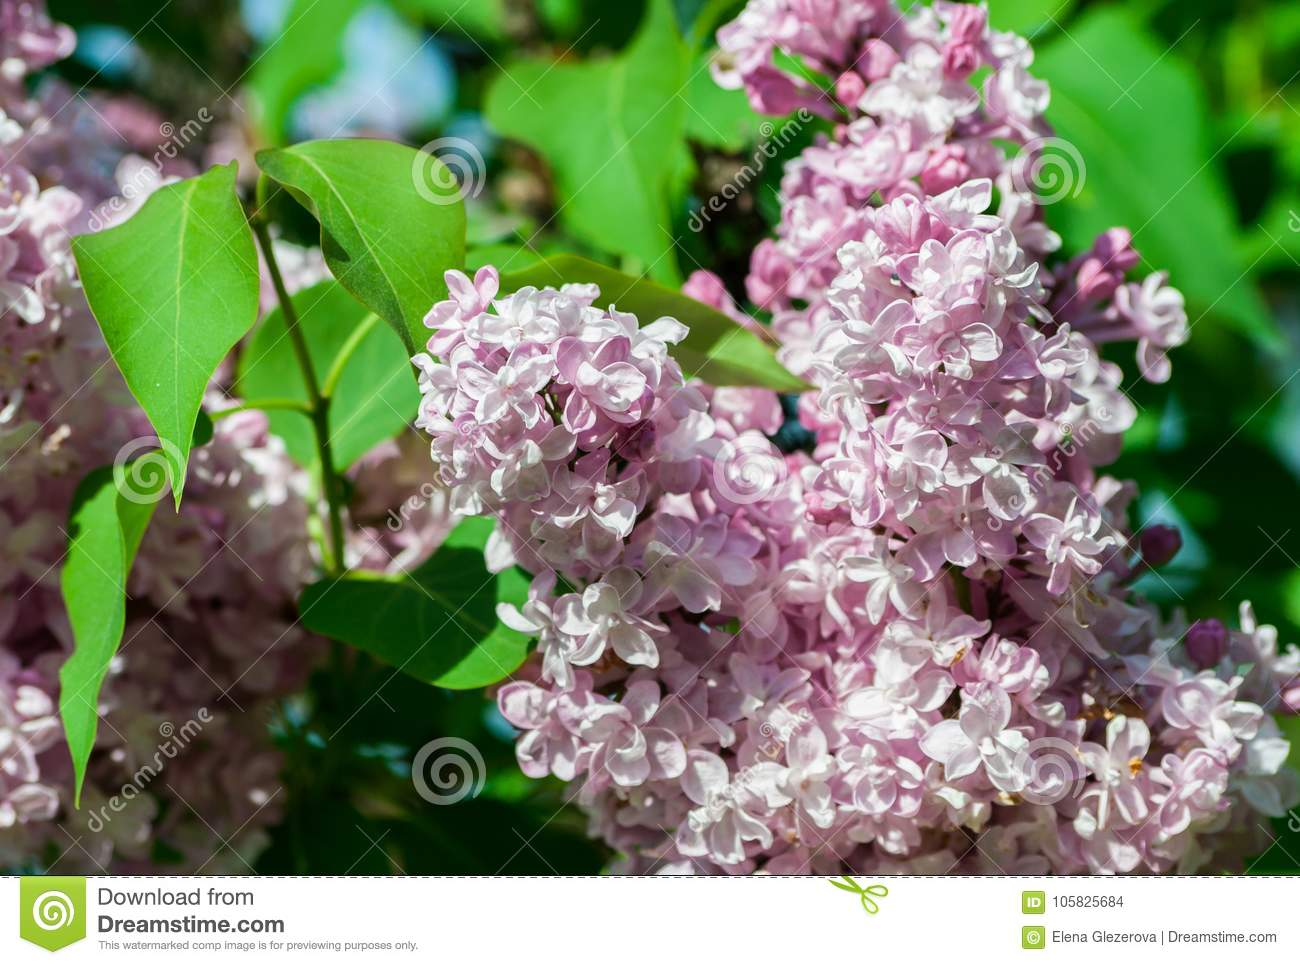 Bush Of Light White And Pink Terry Lilac A Cluster Of Flowers In